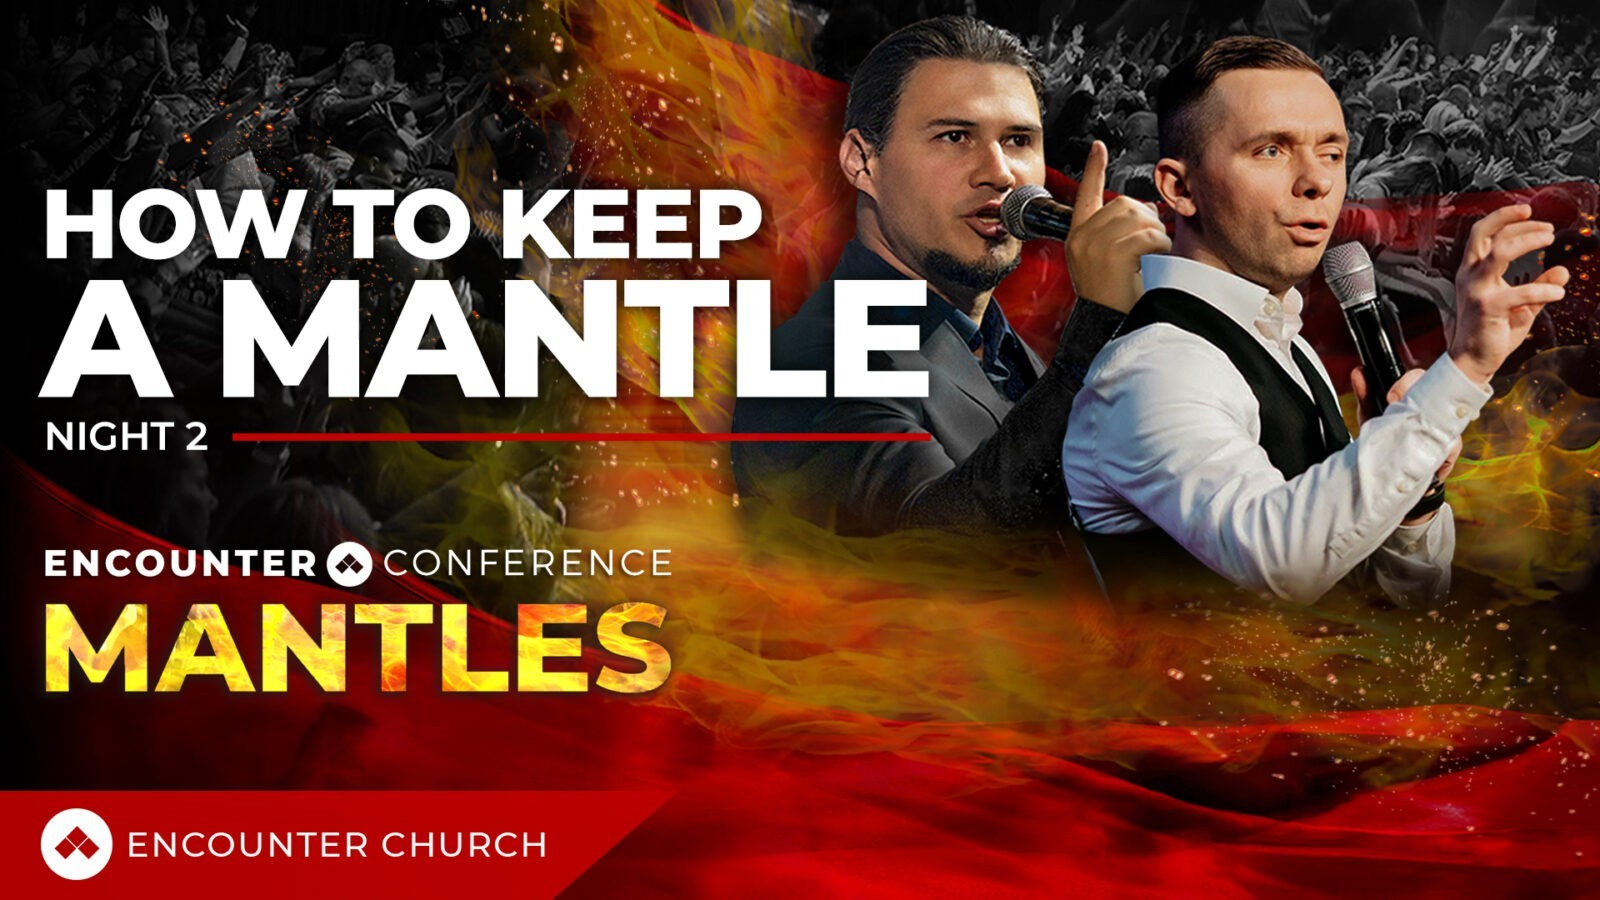 ENCOUNTER CONFERENCE   MANTLES   HOW TO KEEP A MANTLE   PART 1